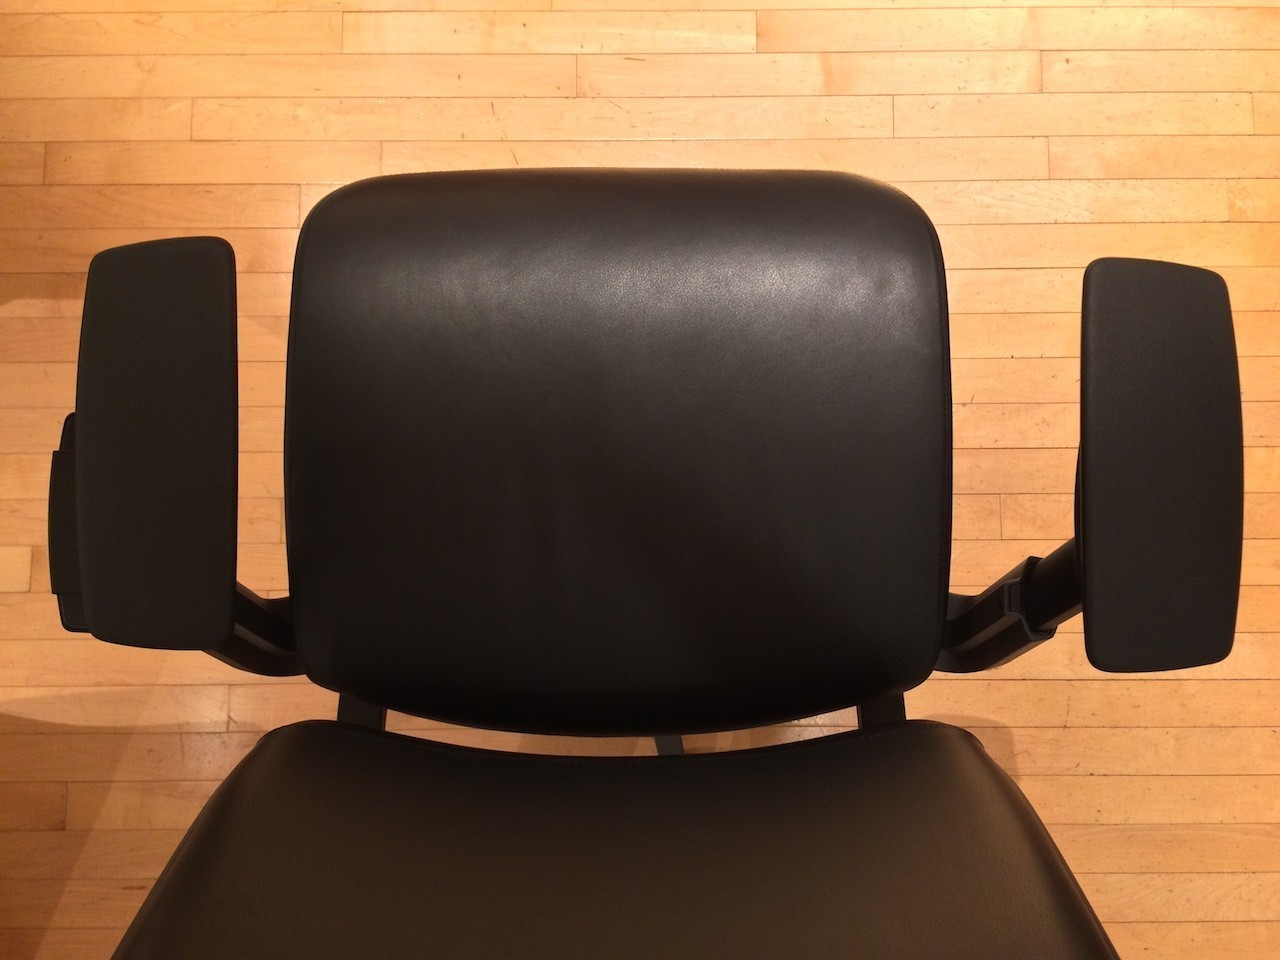 Steelcase Think Chair armrest width adjustment